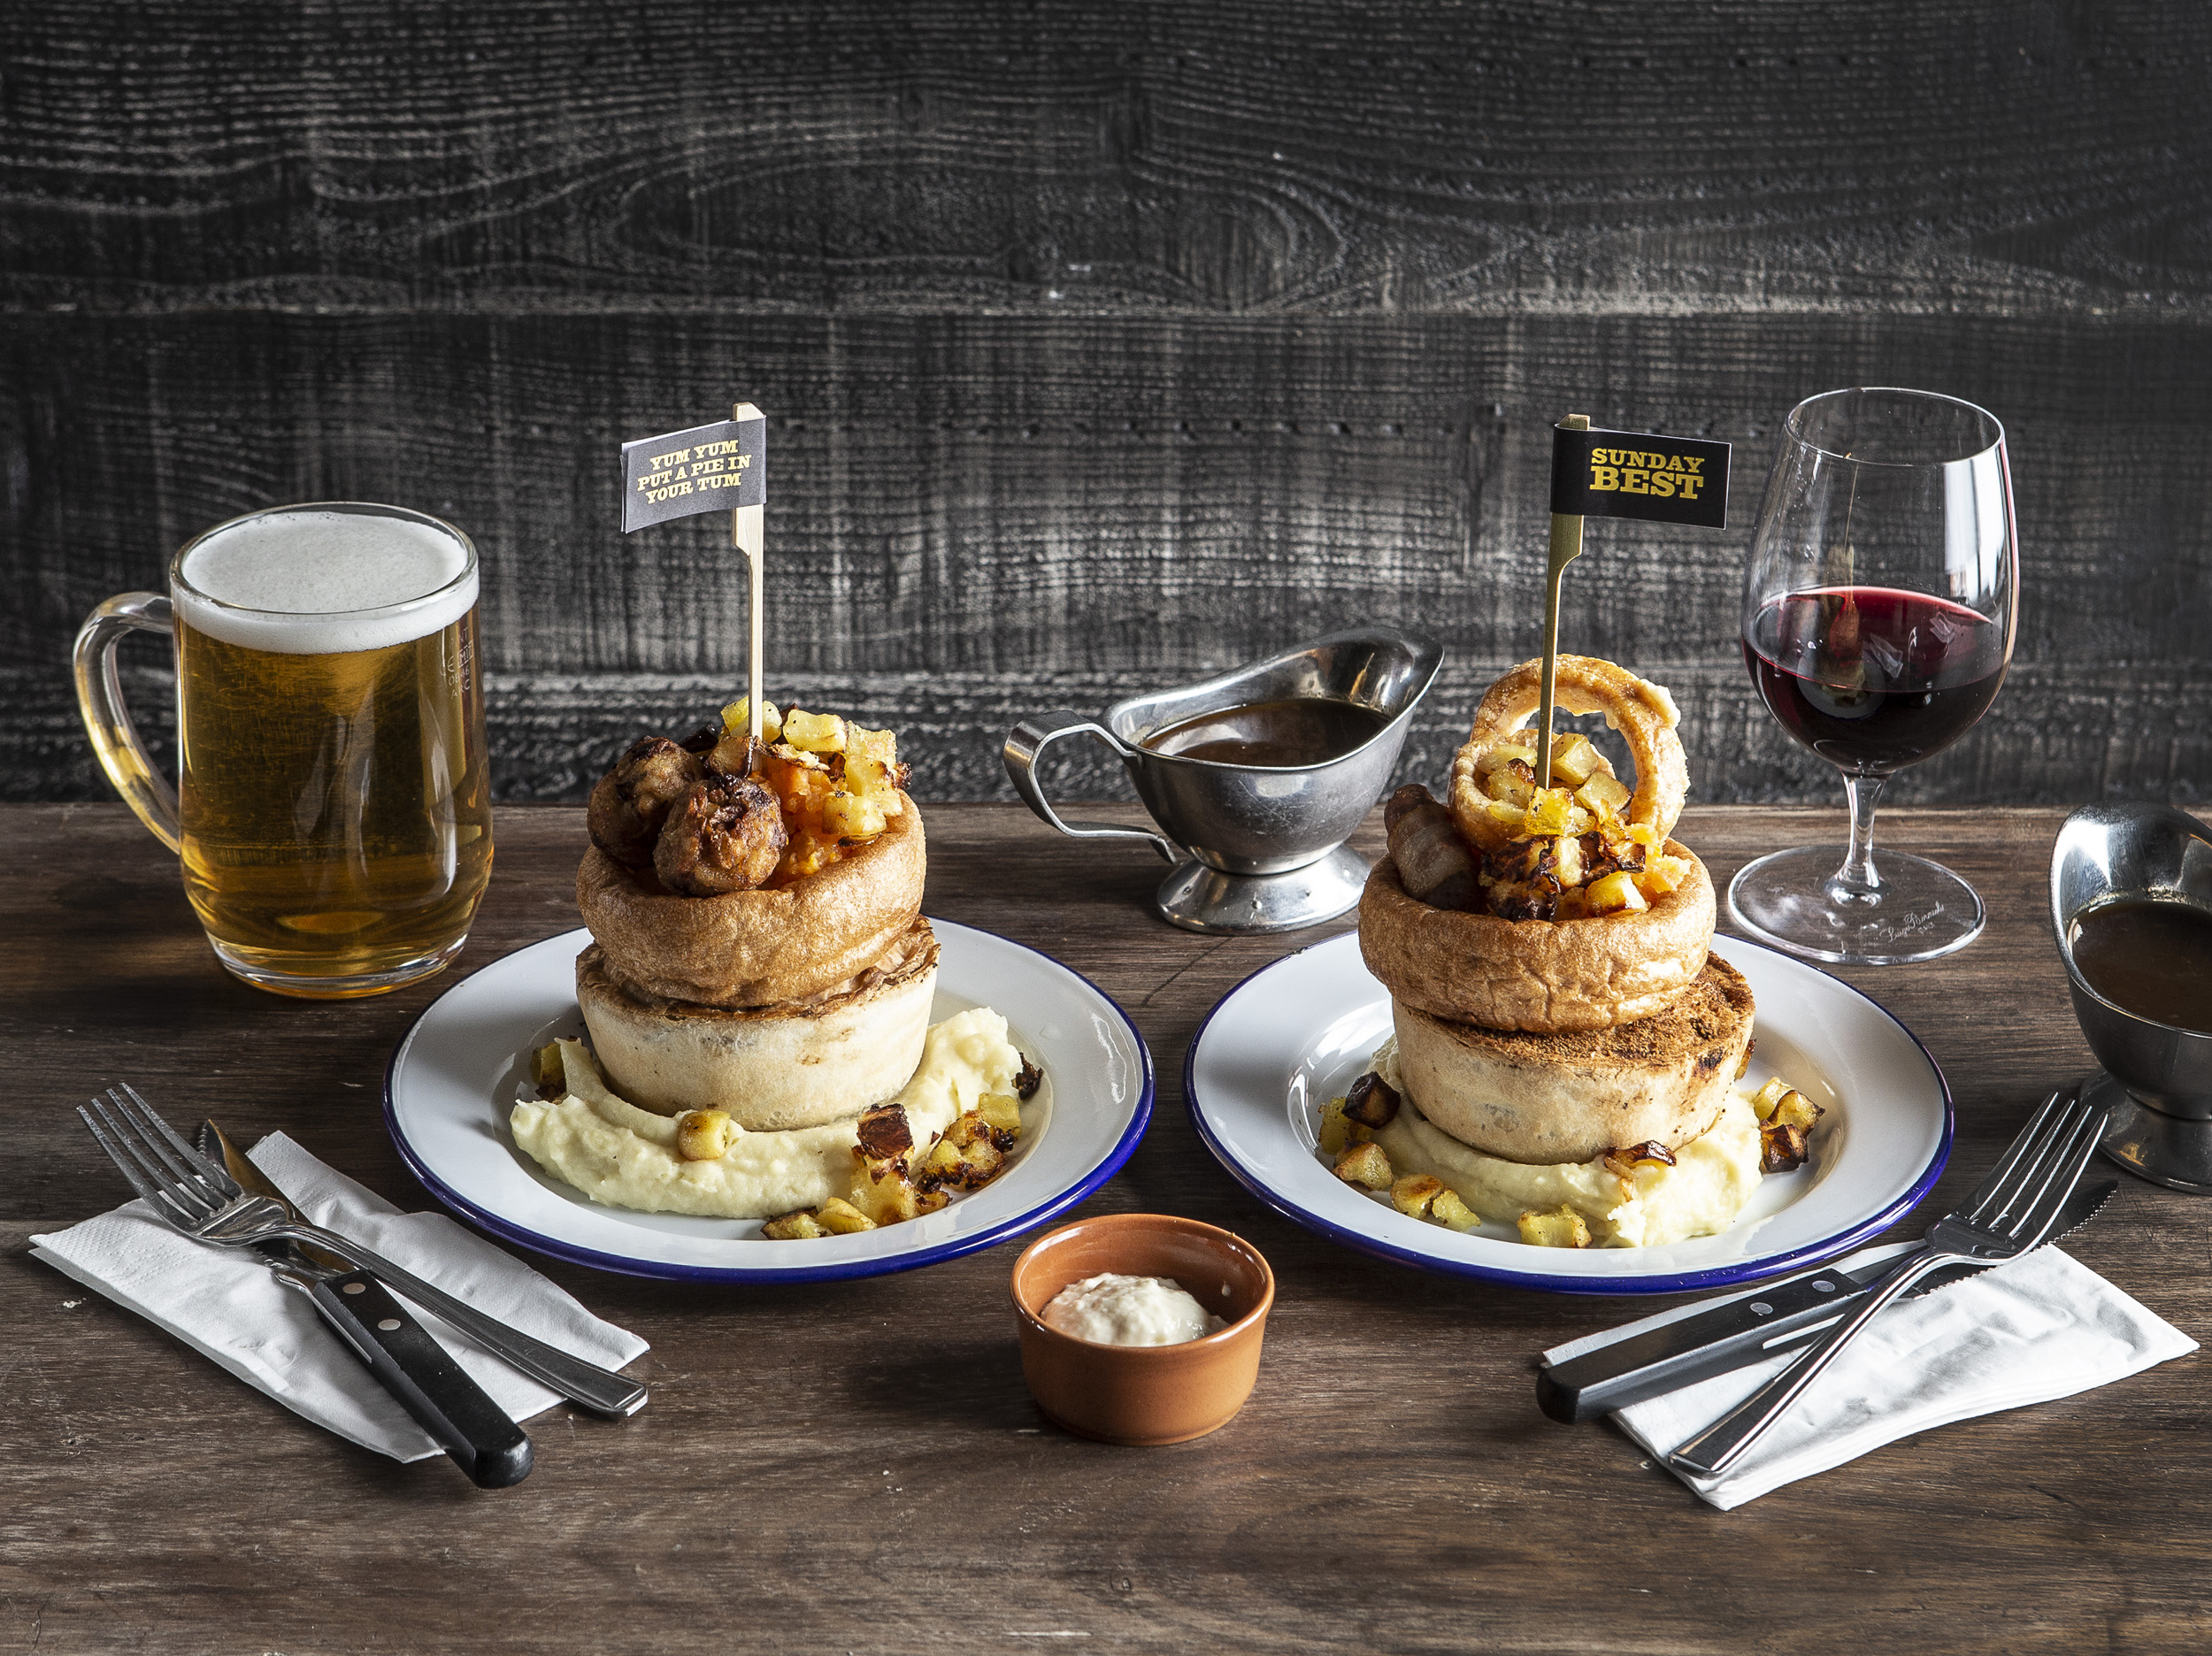 Imagine a world where roasts and pies collide…. This just happened, right here in Liverpool